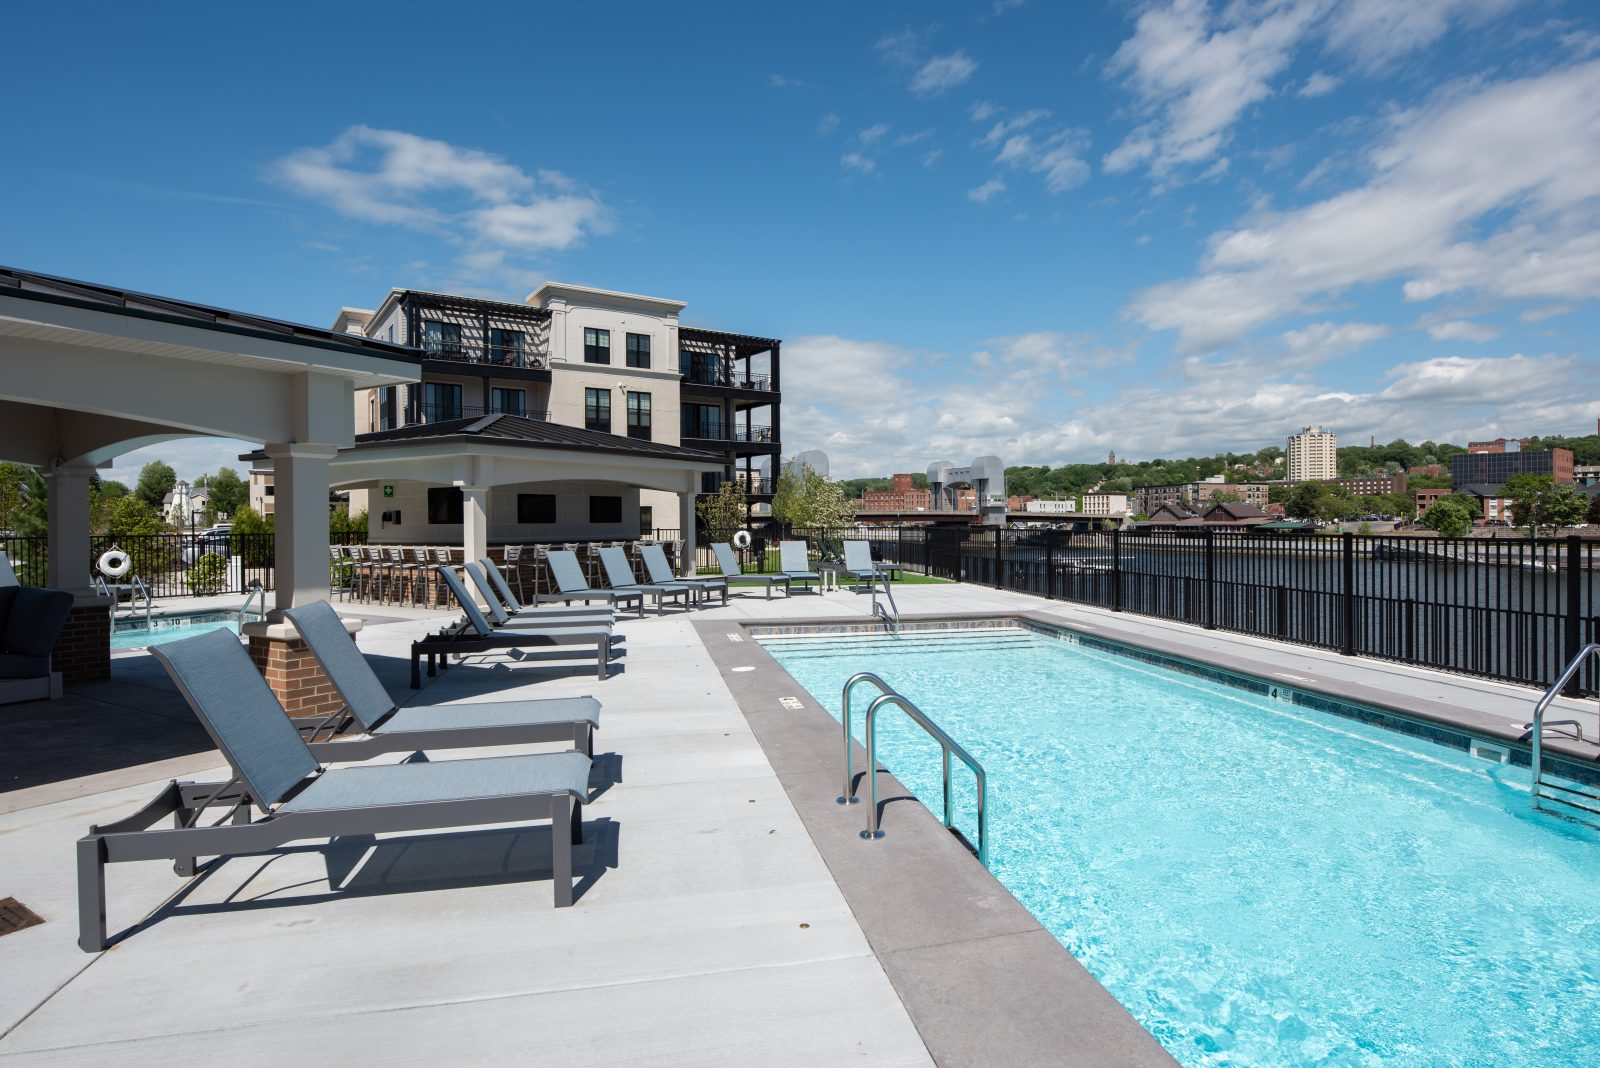 Pool and Chaise Lounge Chairs